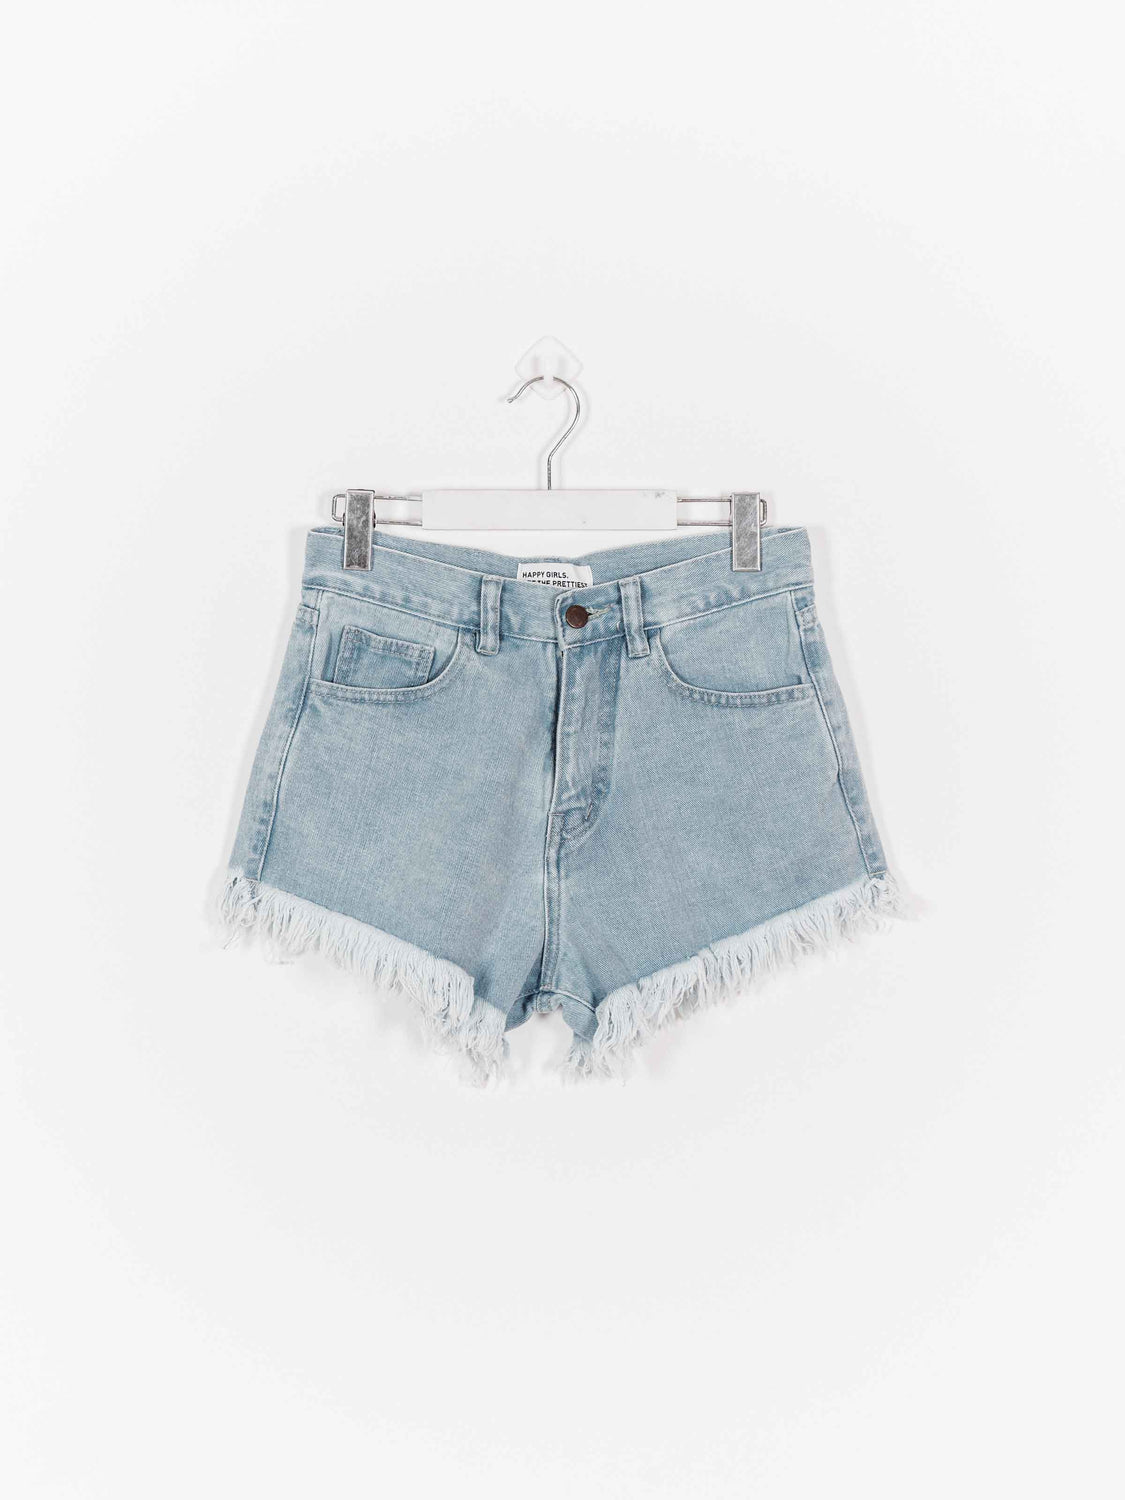 FRED Beach Bum Shorts Light Blue